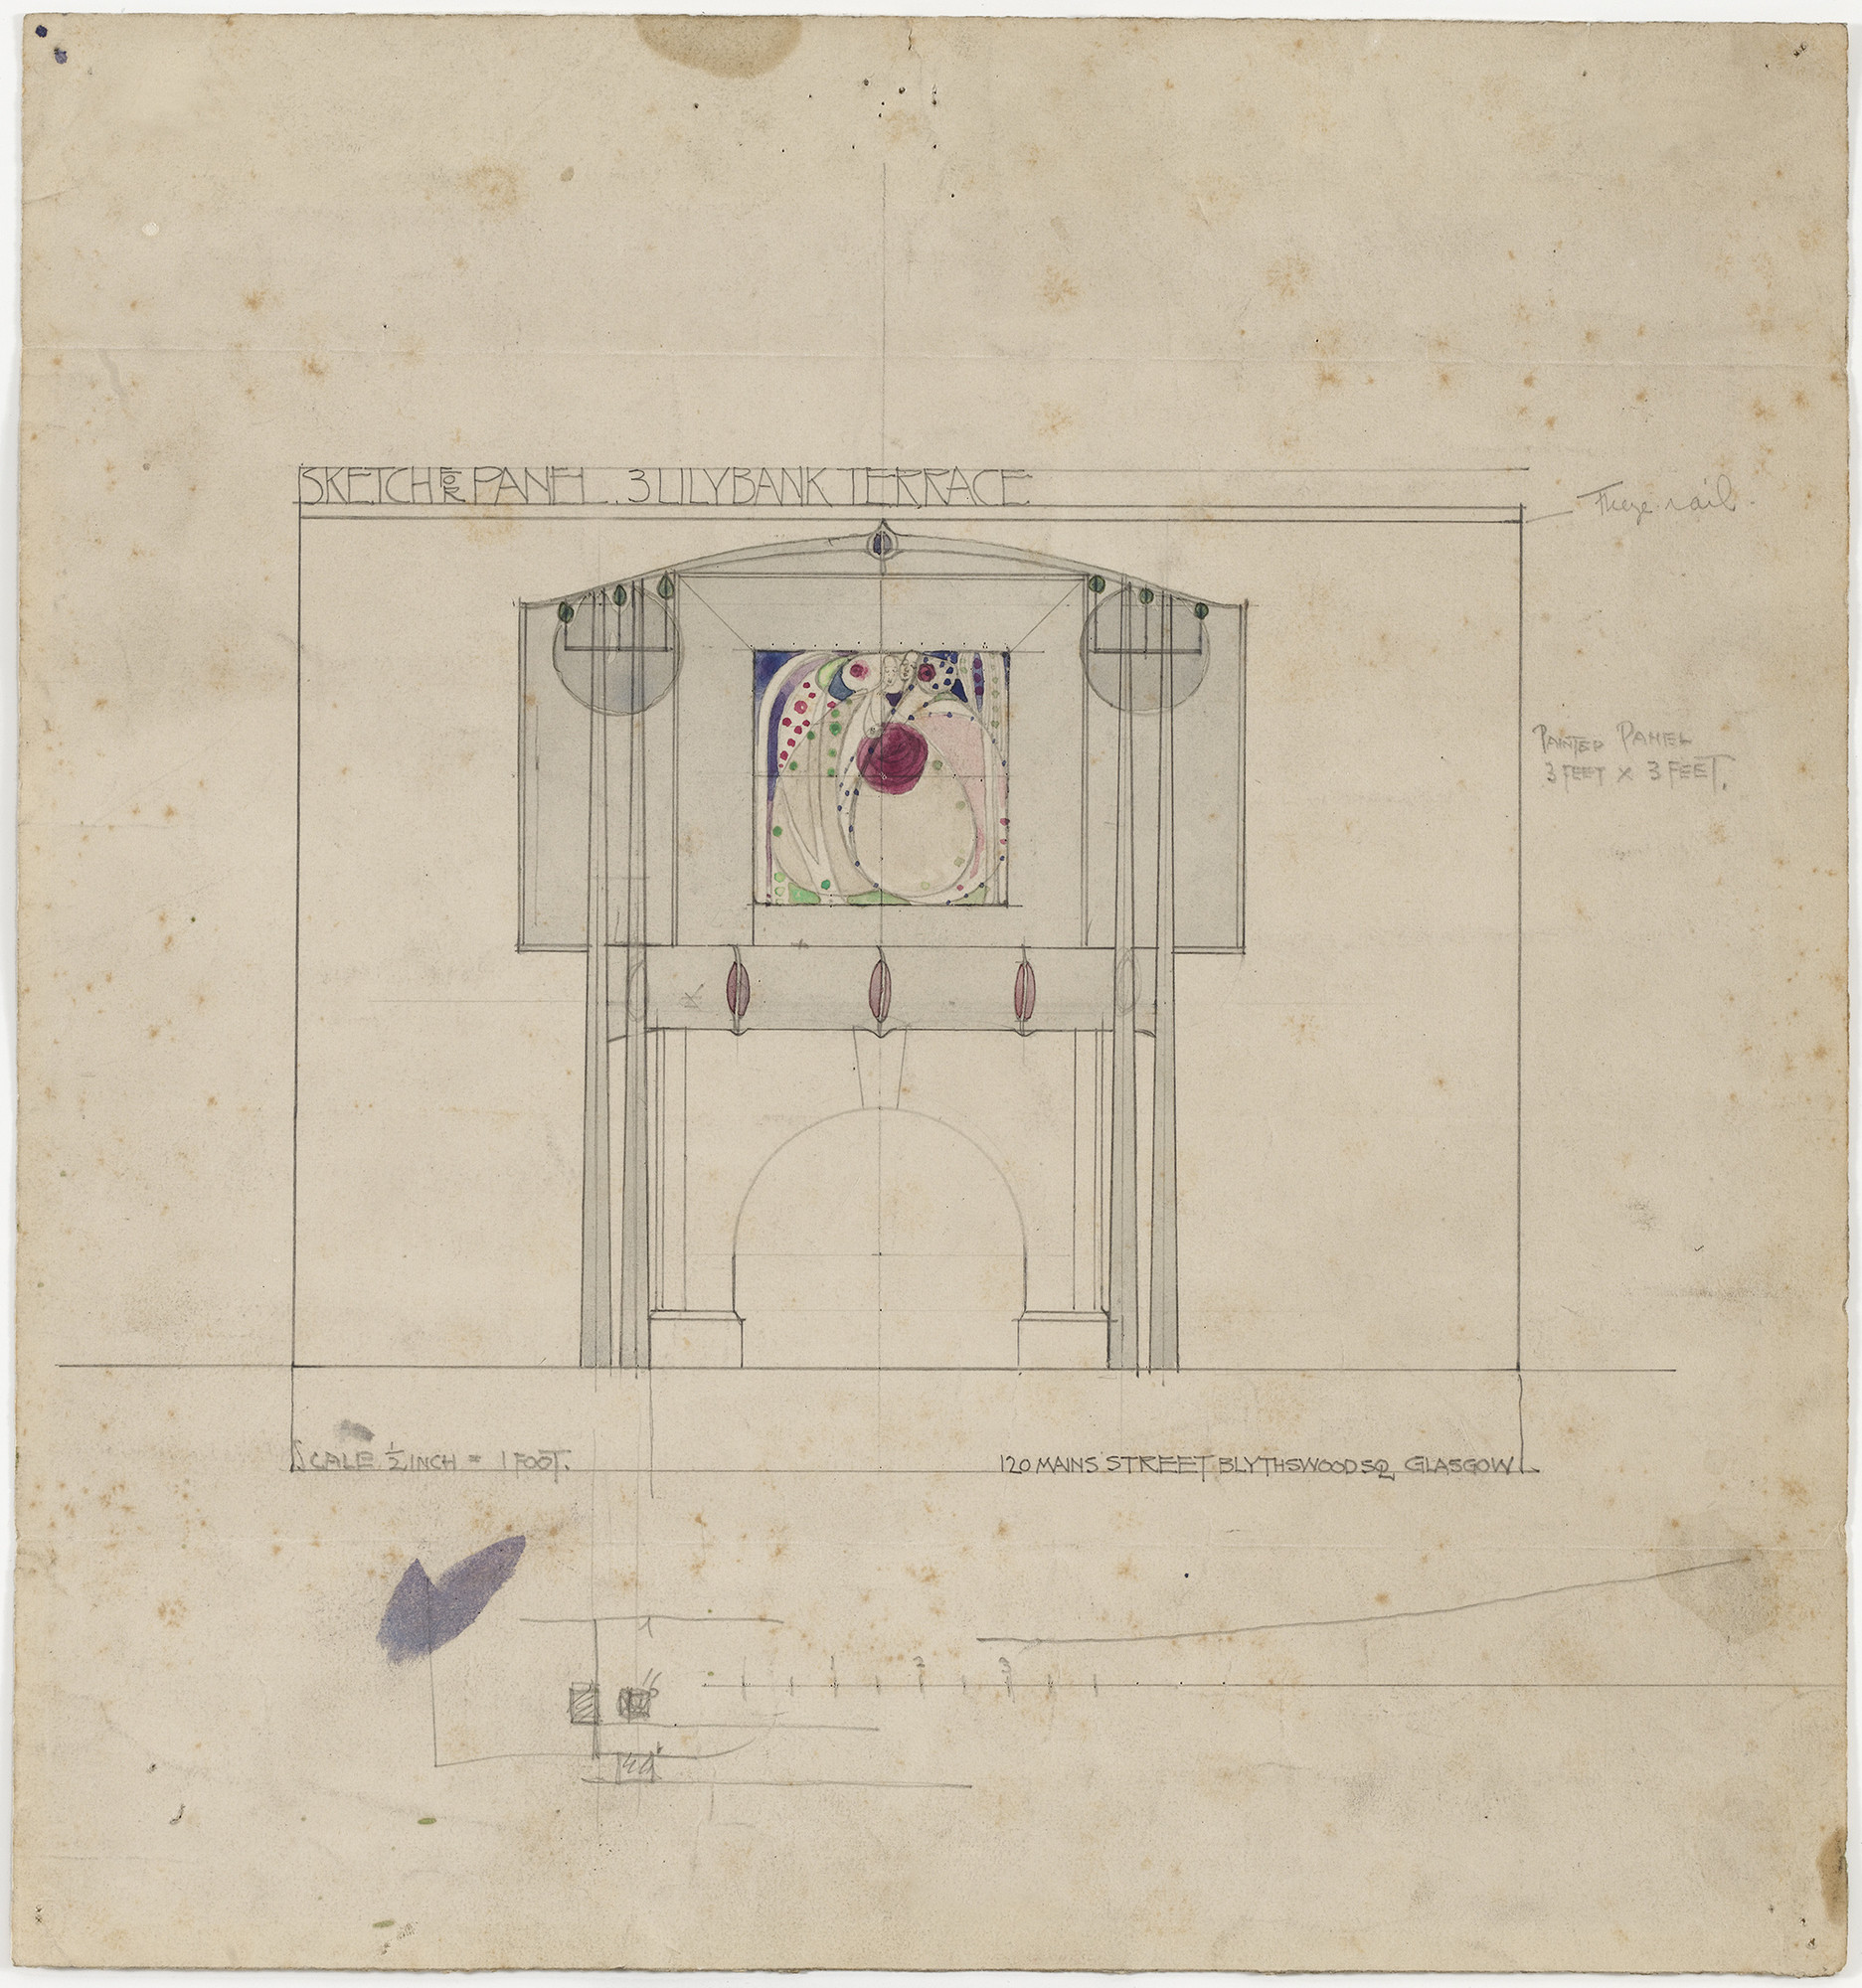 Charles Rennie Mackintosh (British, 1868–1928) and Margaret Macdonald (British, 1865–1933). Design for a Fireplace Wall, interior elevation of drawing room at 3 Lilybank Terrace, Glasgow. 1901. Pencil and watercolor on paper. 11 1⁄2 × 10 3/4″ (29.2 × 27.3 cm). The Museum of Modern Art, New York. Gift of Joseph H. Heil, by exchange, 2009